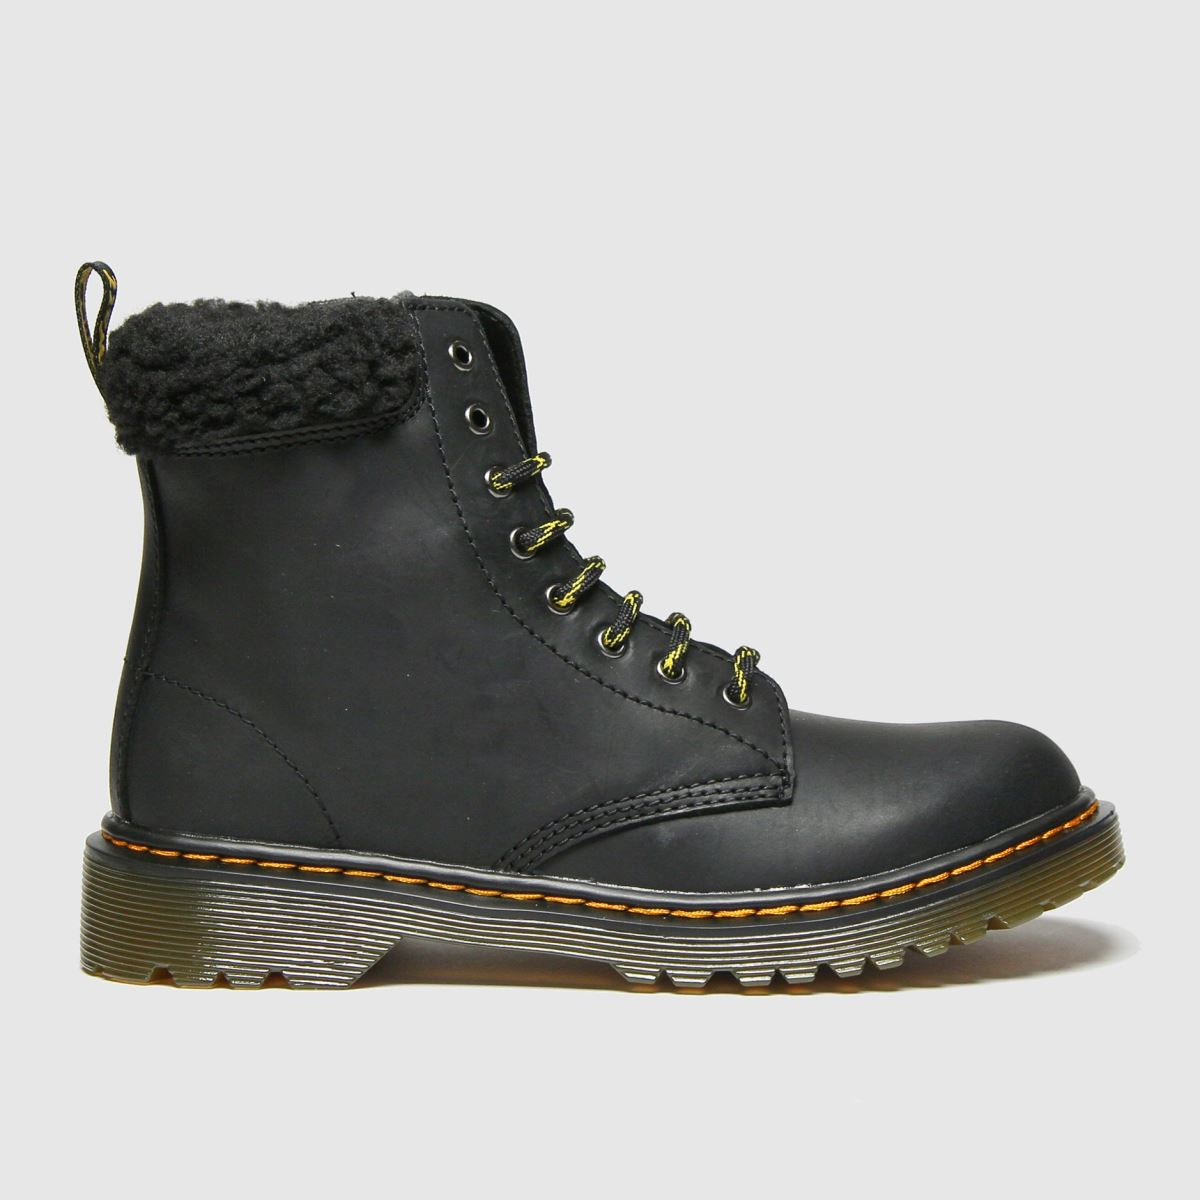 Dr Martens Black 1460 Collar Boots Youth